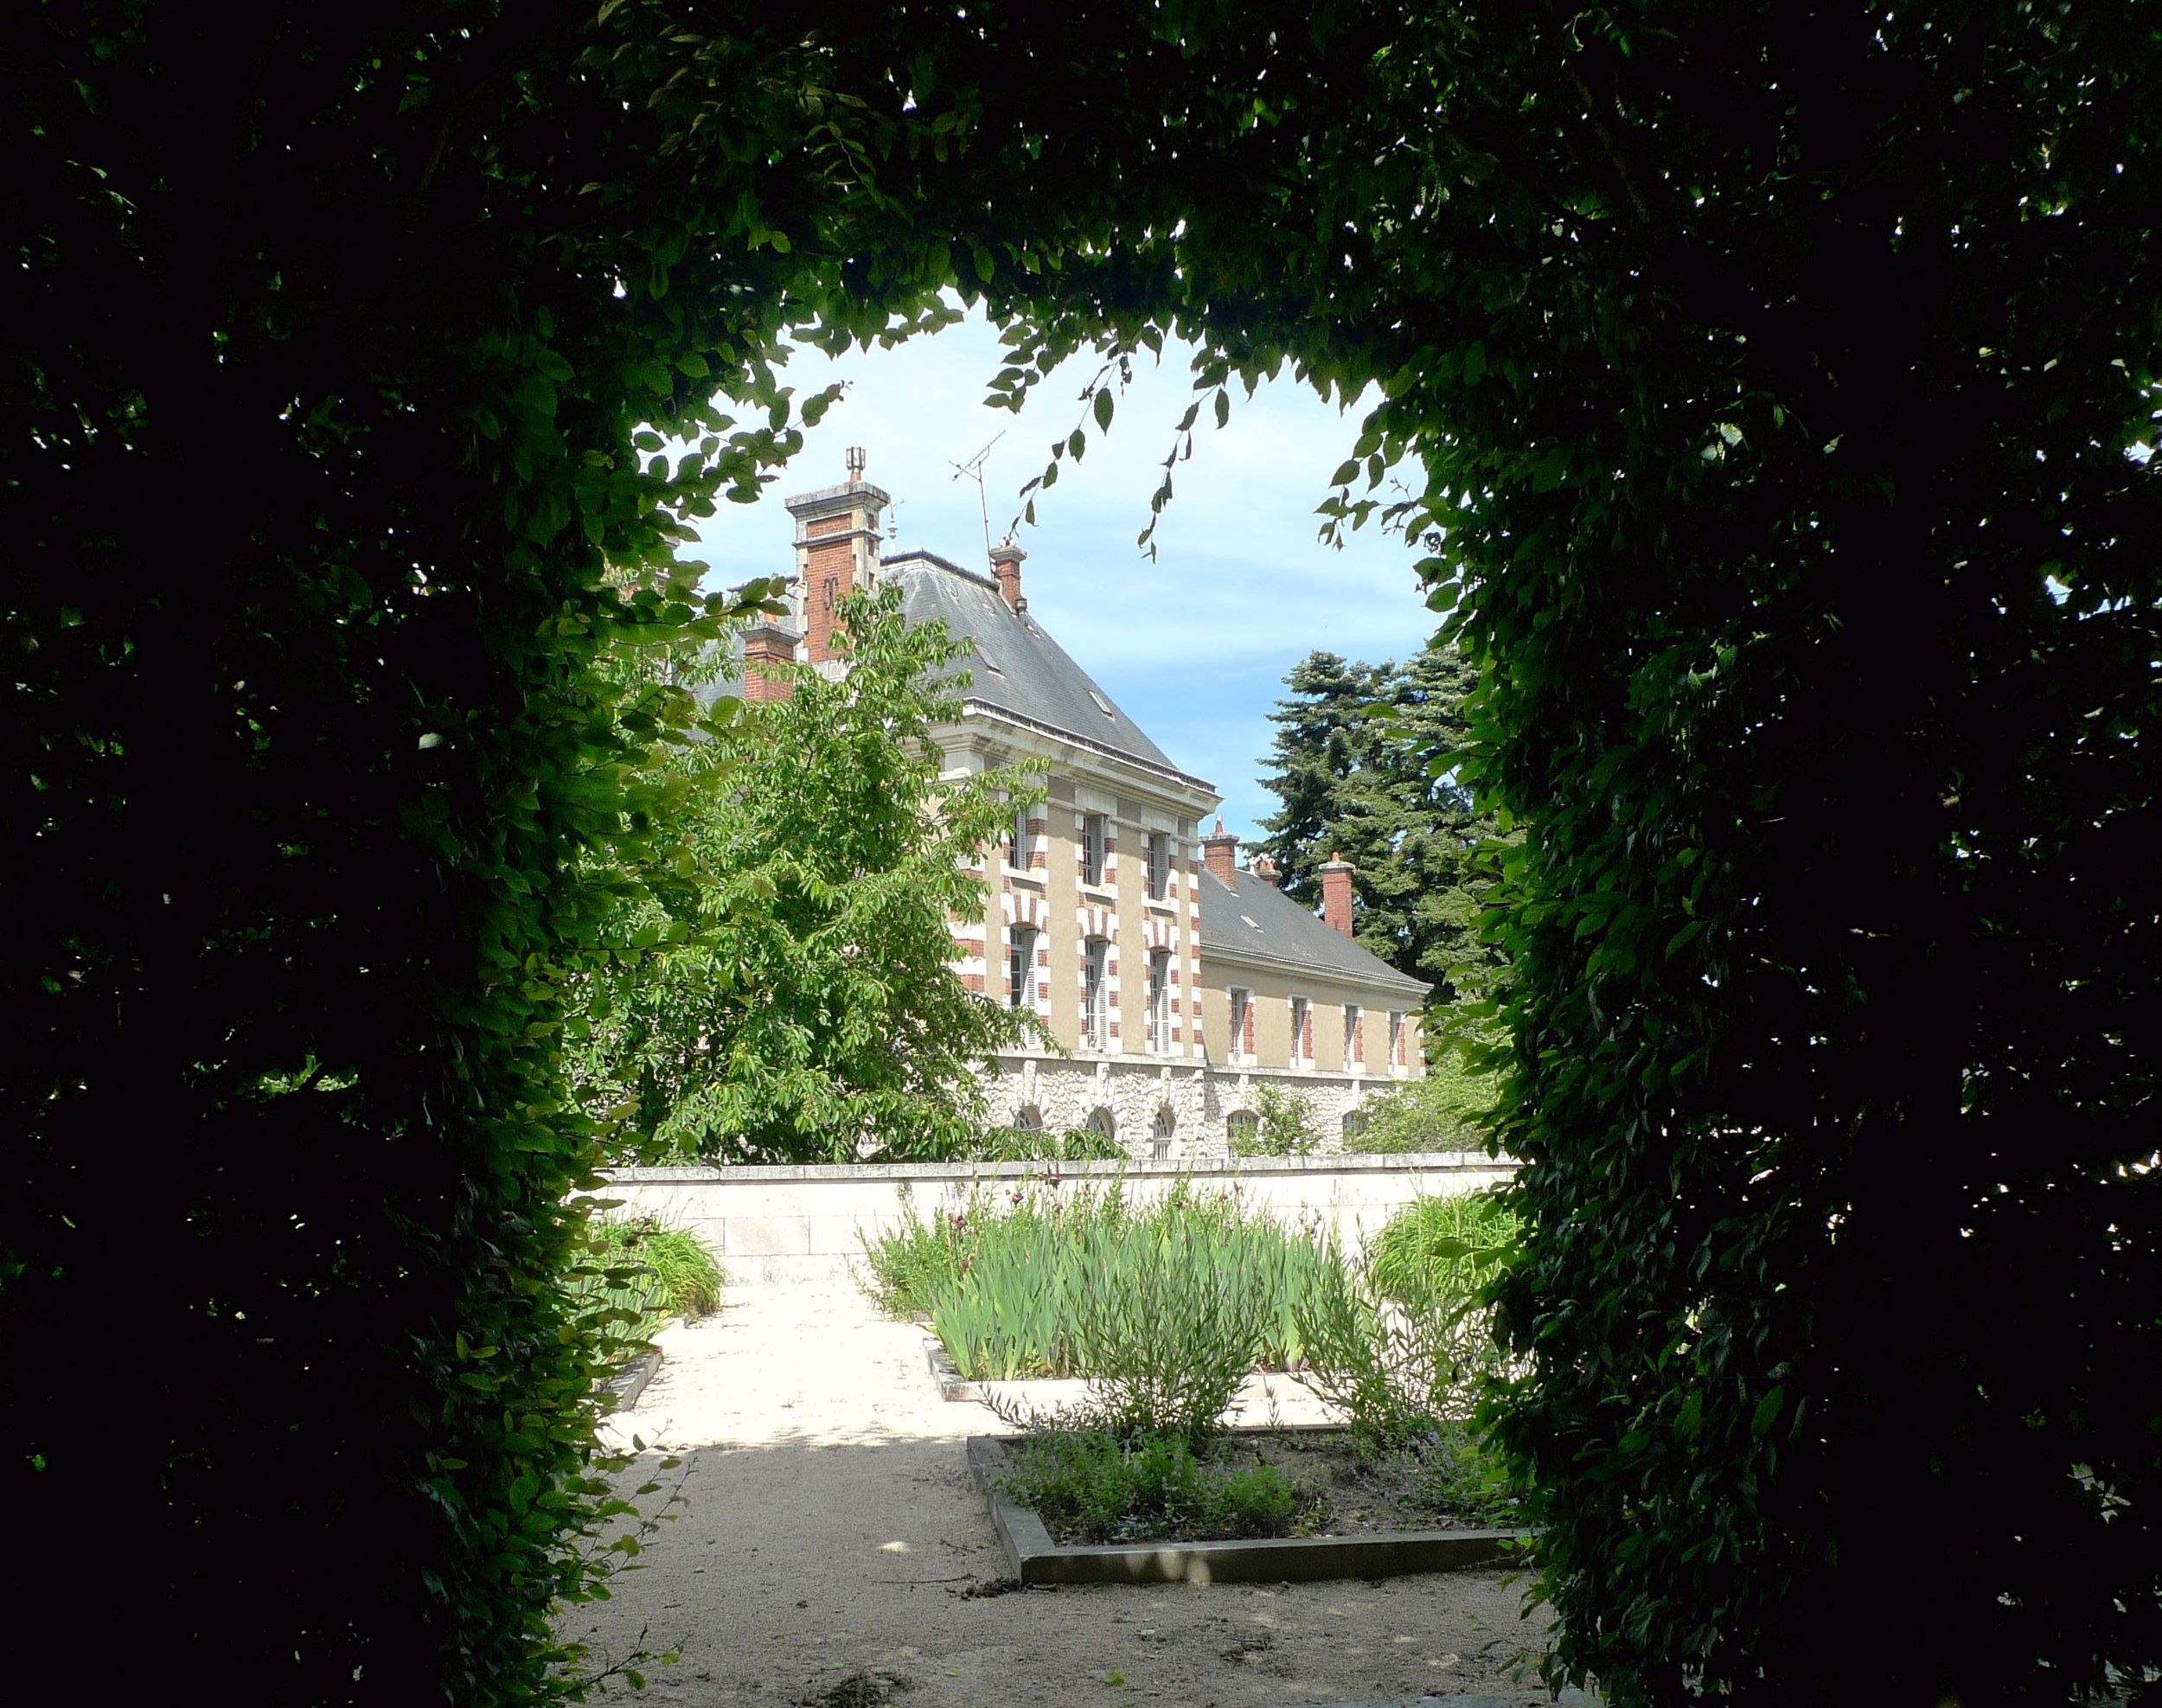 A cloistered view of Blois